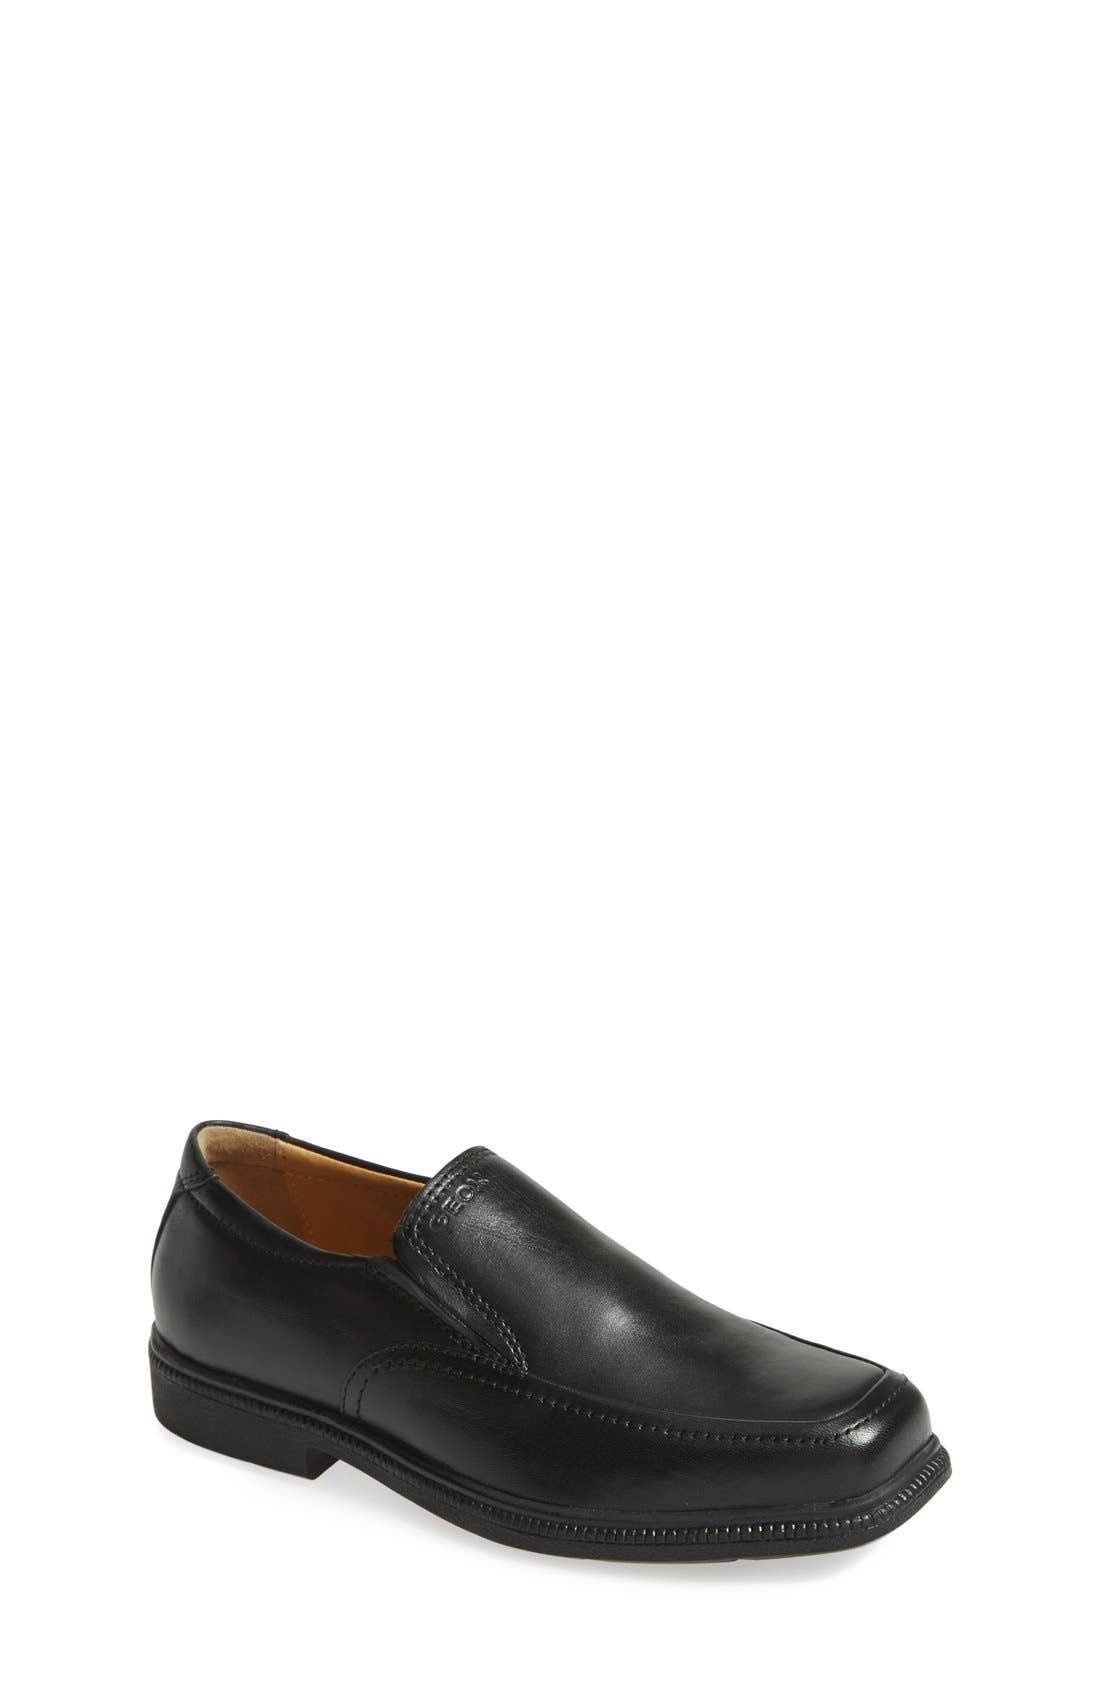 GEOX 'Federico' Loafer